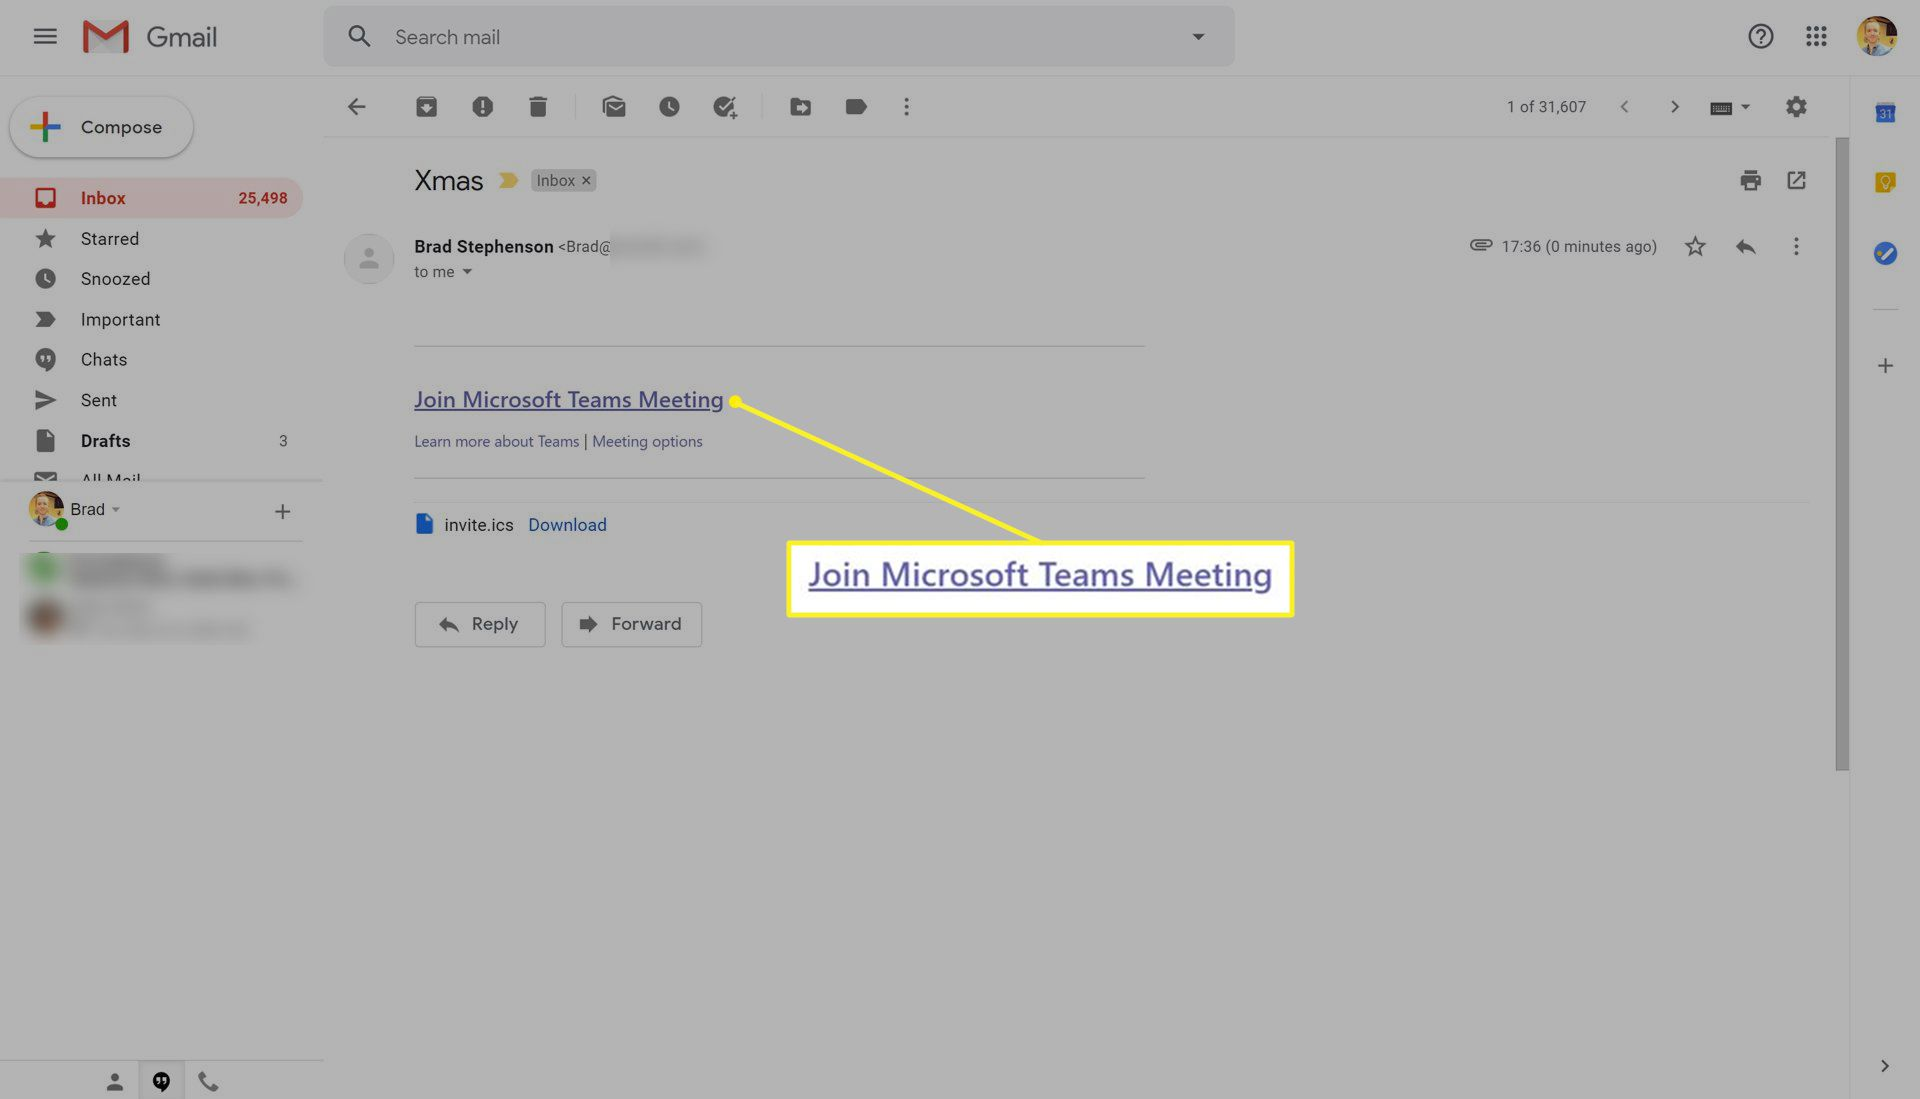 Link to join a Microsoft Teams meeting